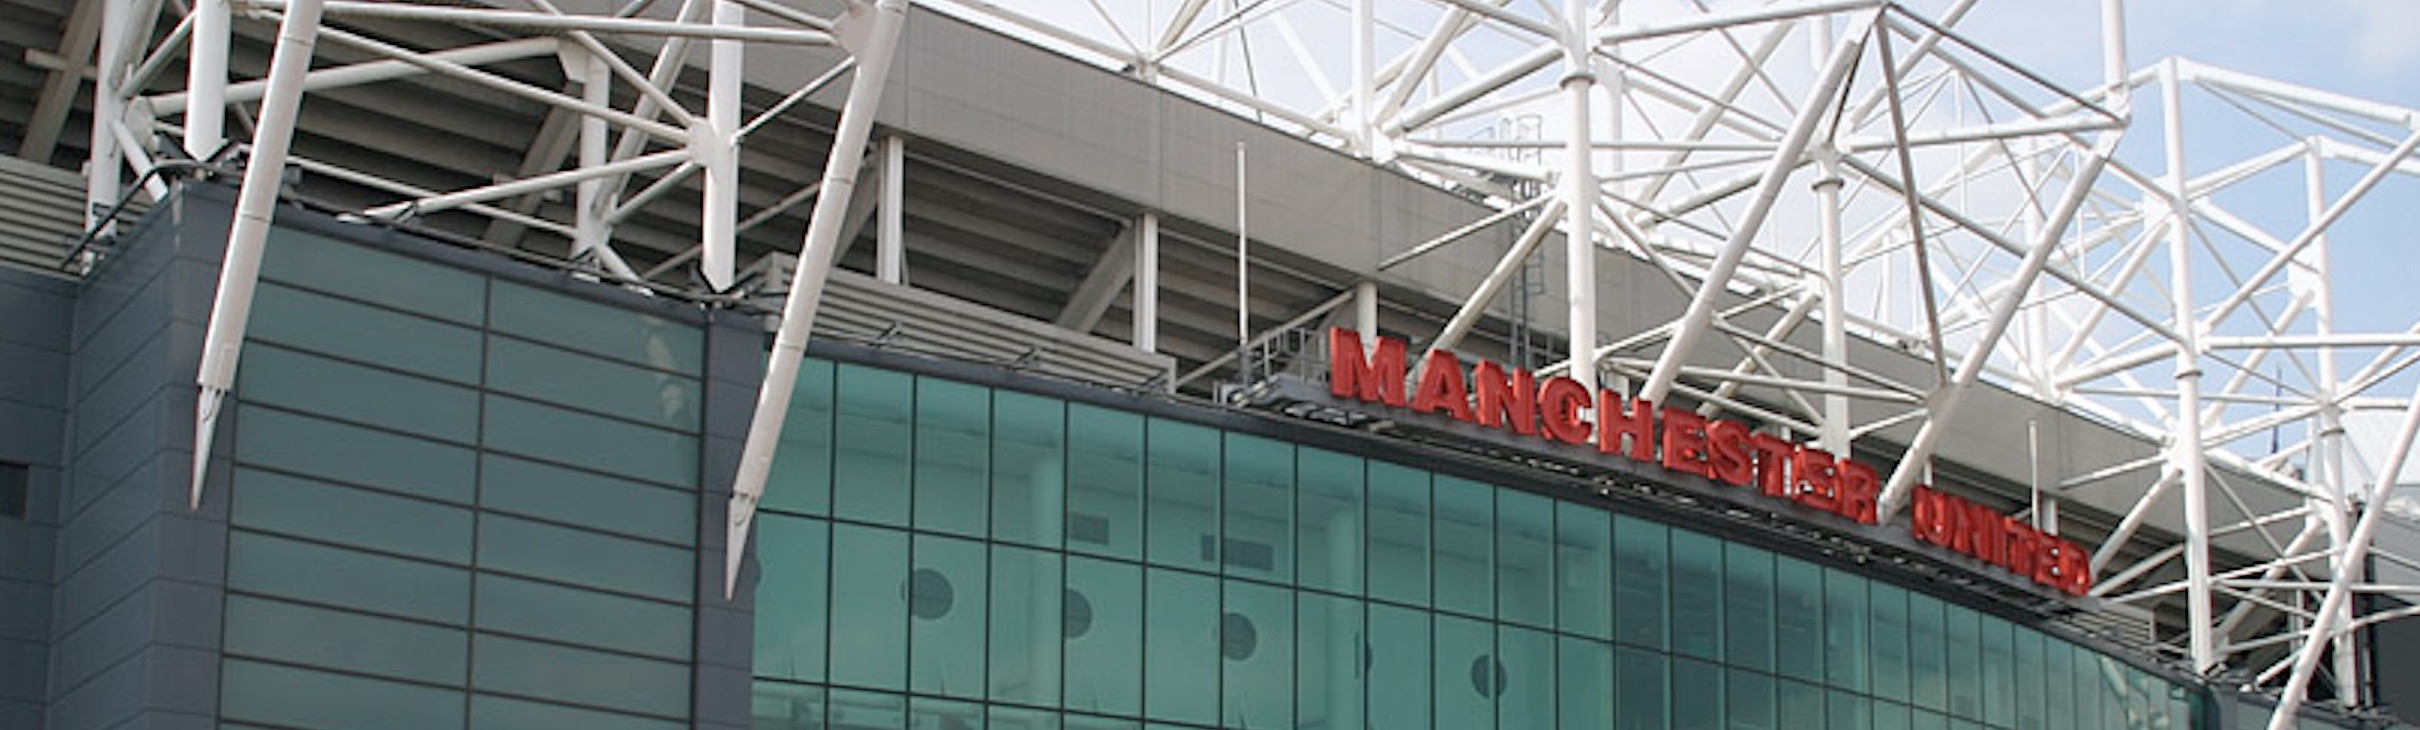 Man United V Cardiff - Coach/Ferry & Hotel